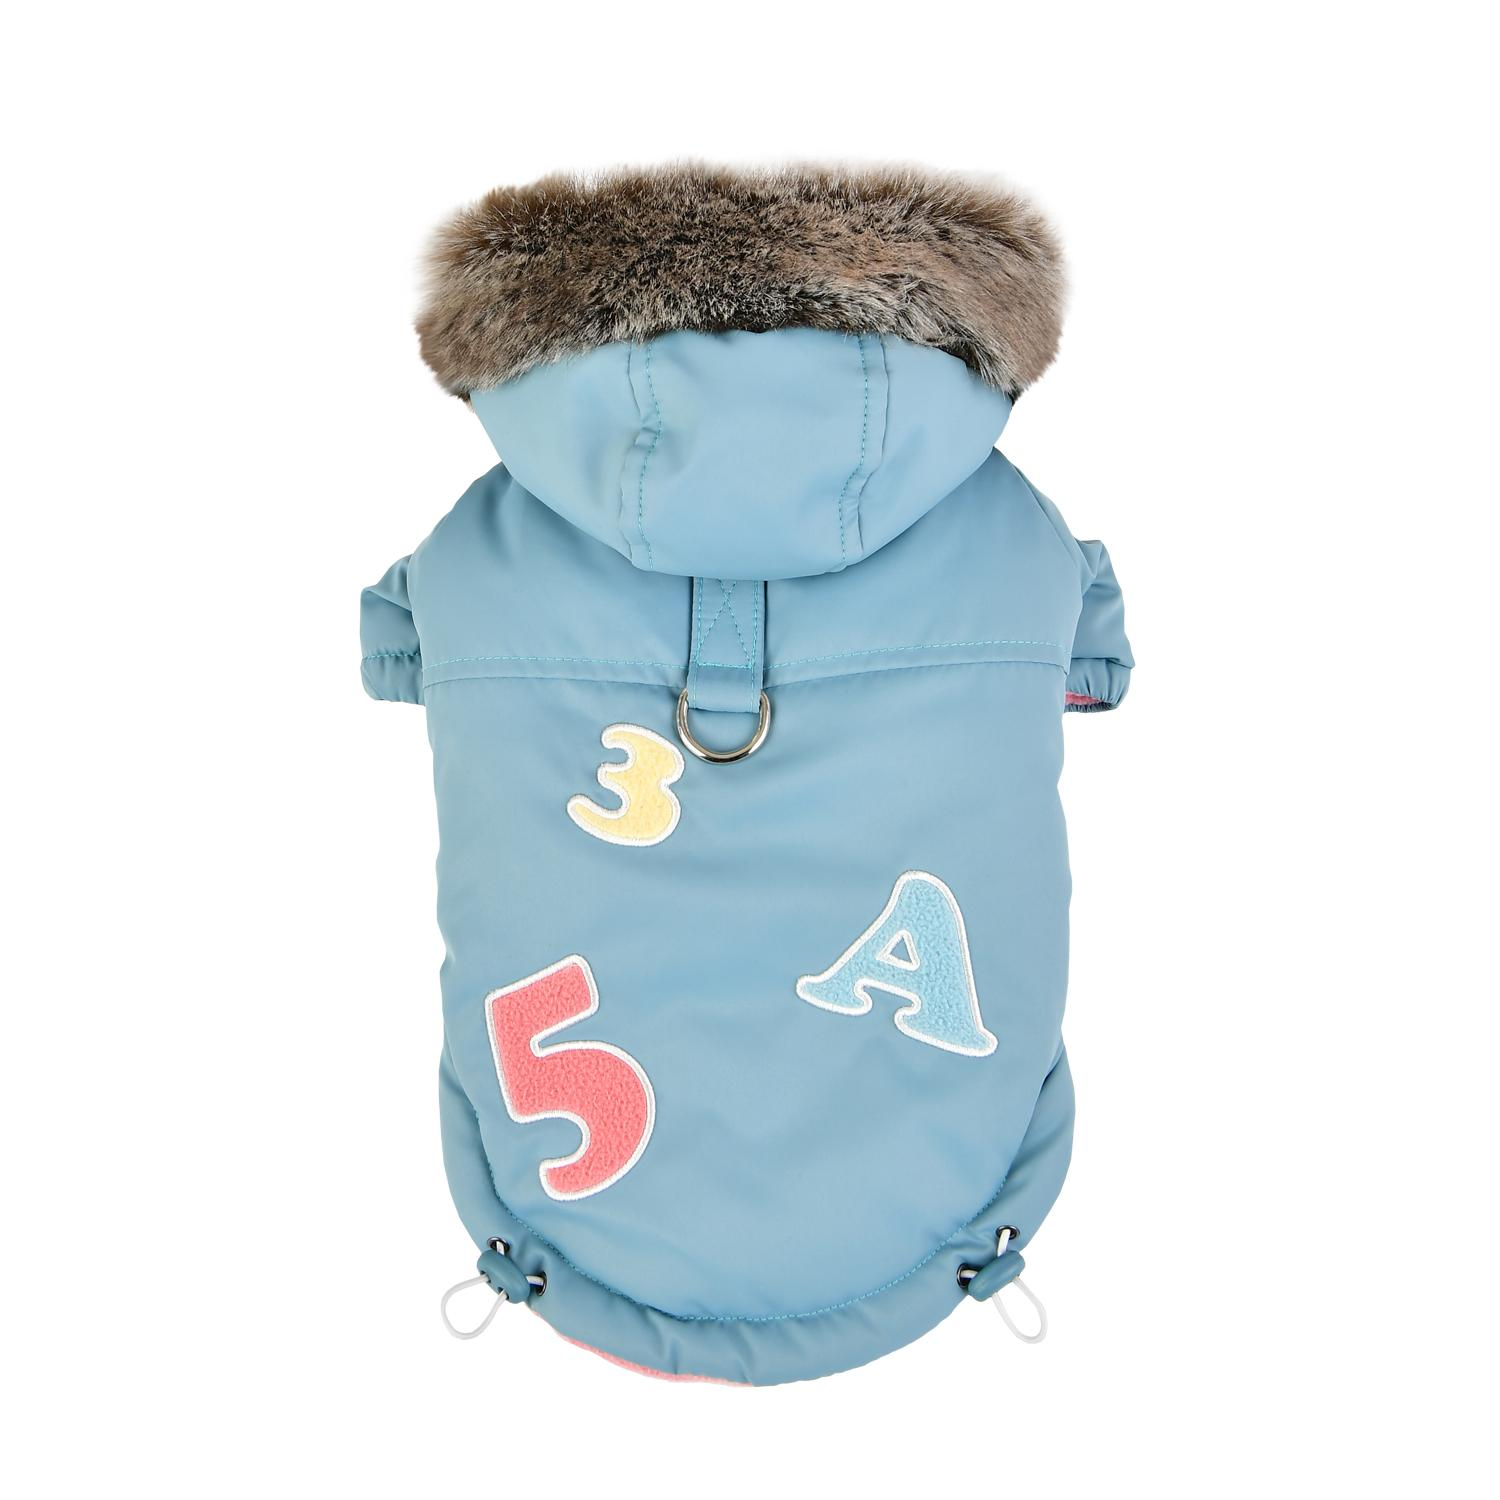 Raissa Dog Coat by Pinkaholic - Aqua